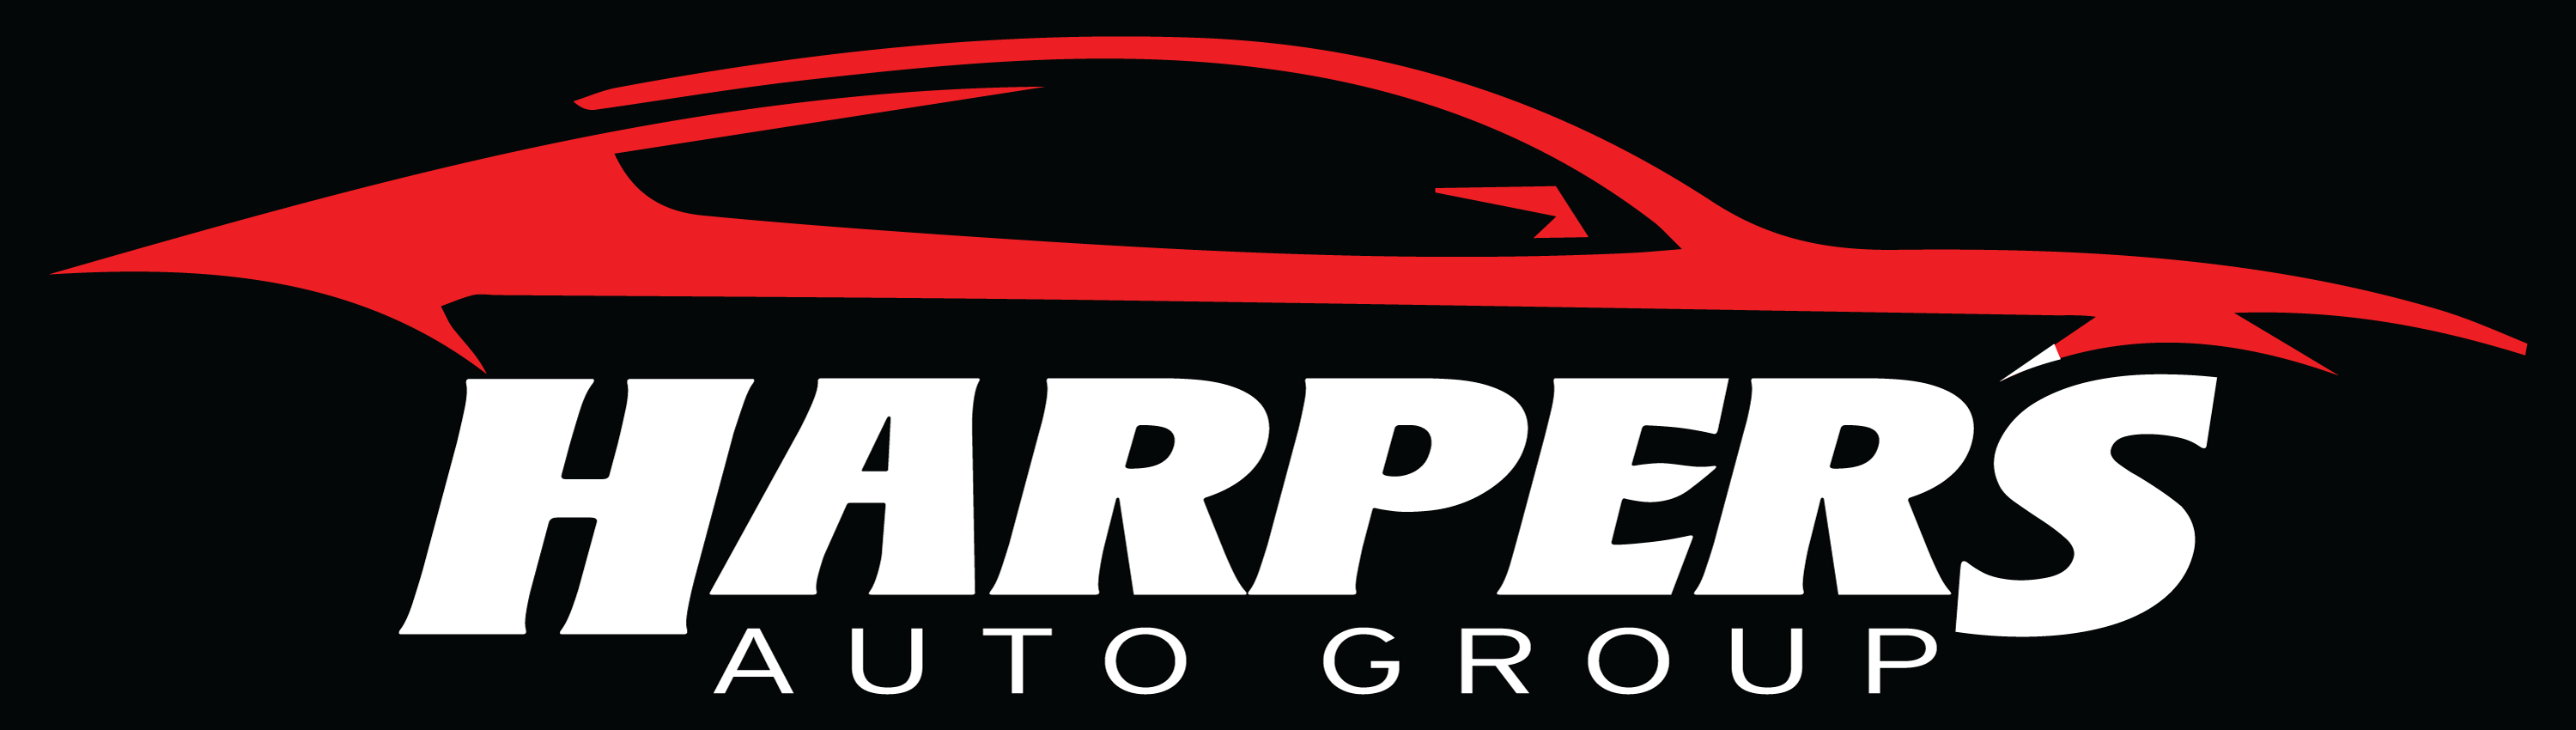 Harper's Auto Group